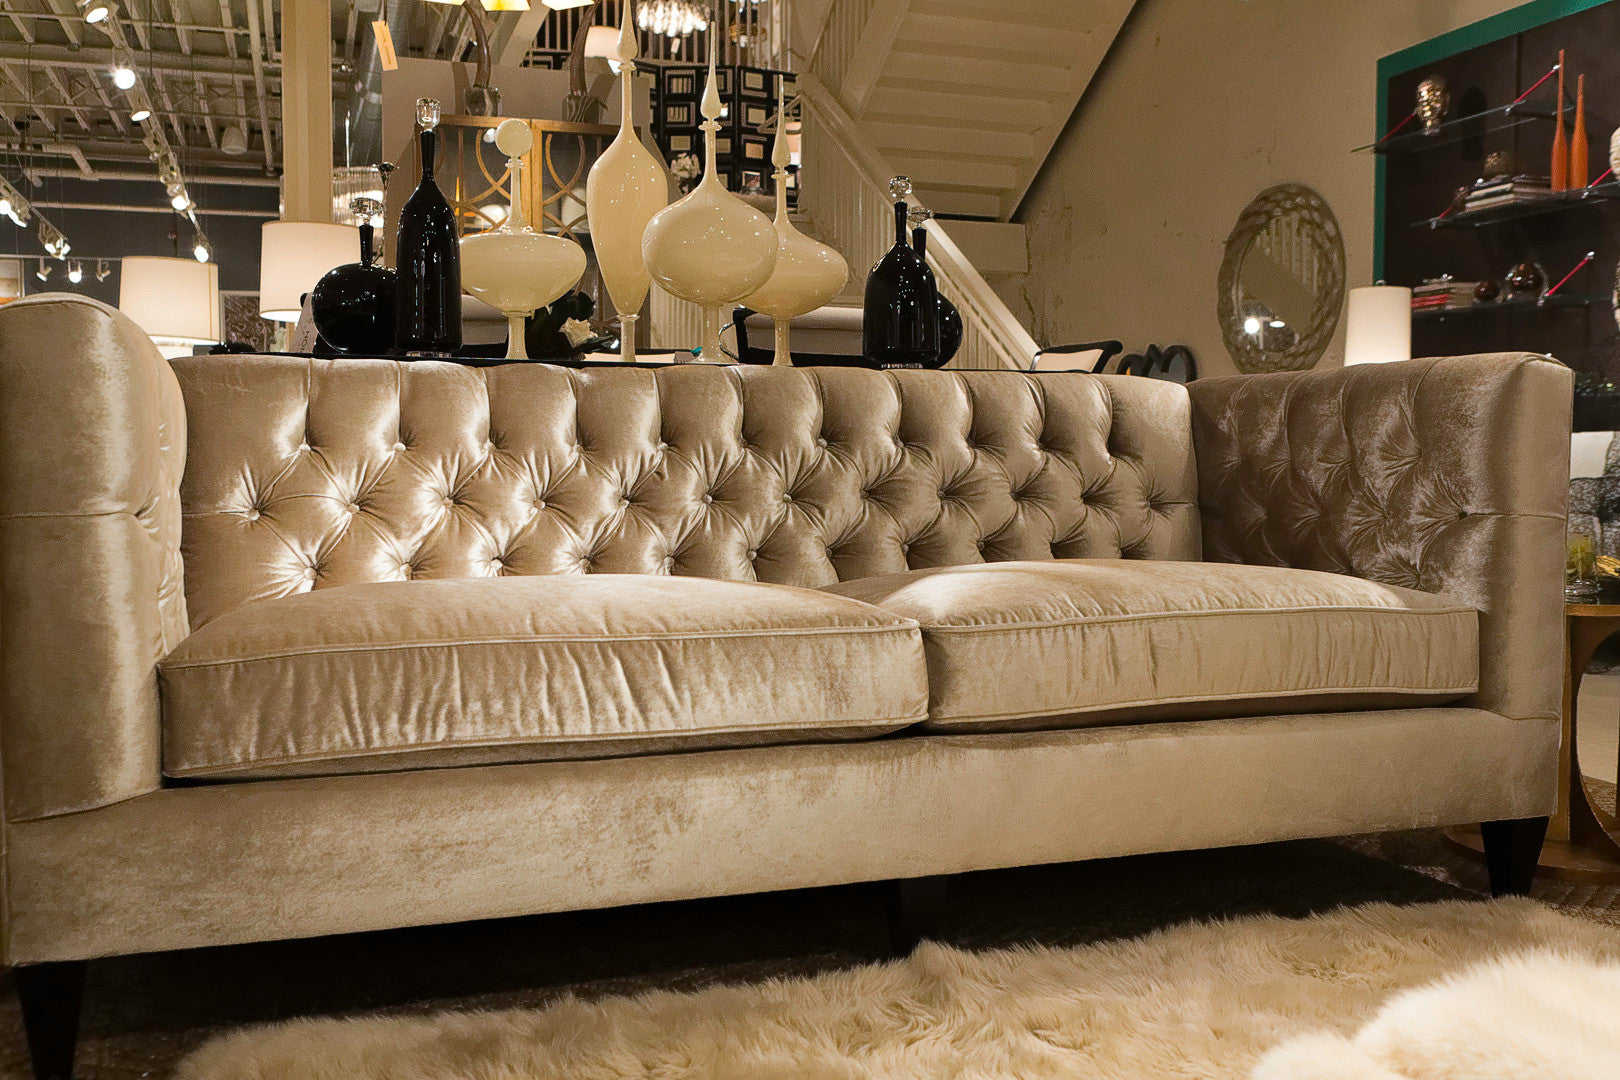 Excellent Bernhardt Beckett Sofa Home Decor 88 Download Free Architecture Designs Rallybritishbridgeorg